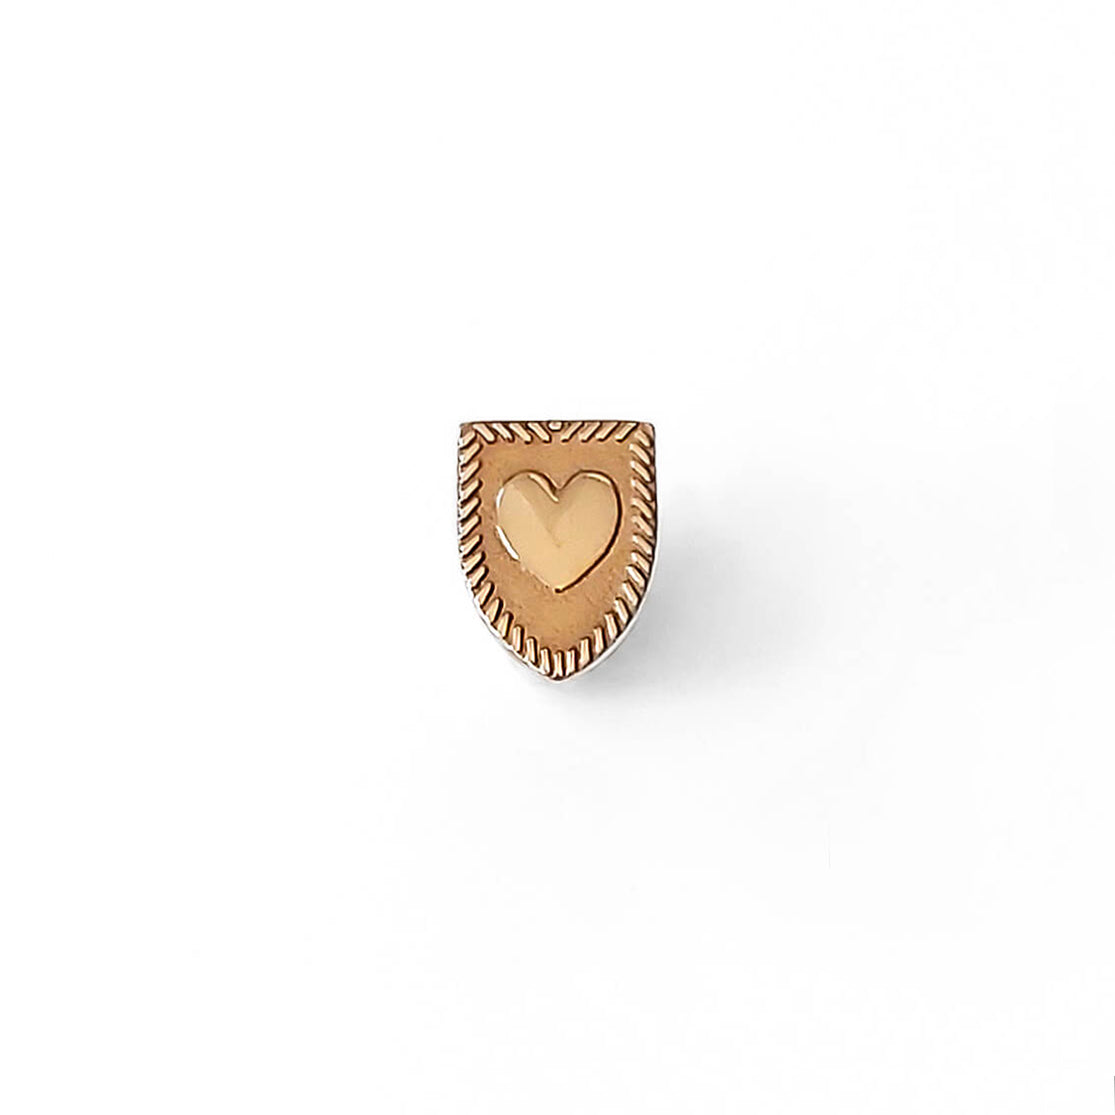 Heart Shield Pin